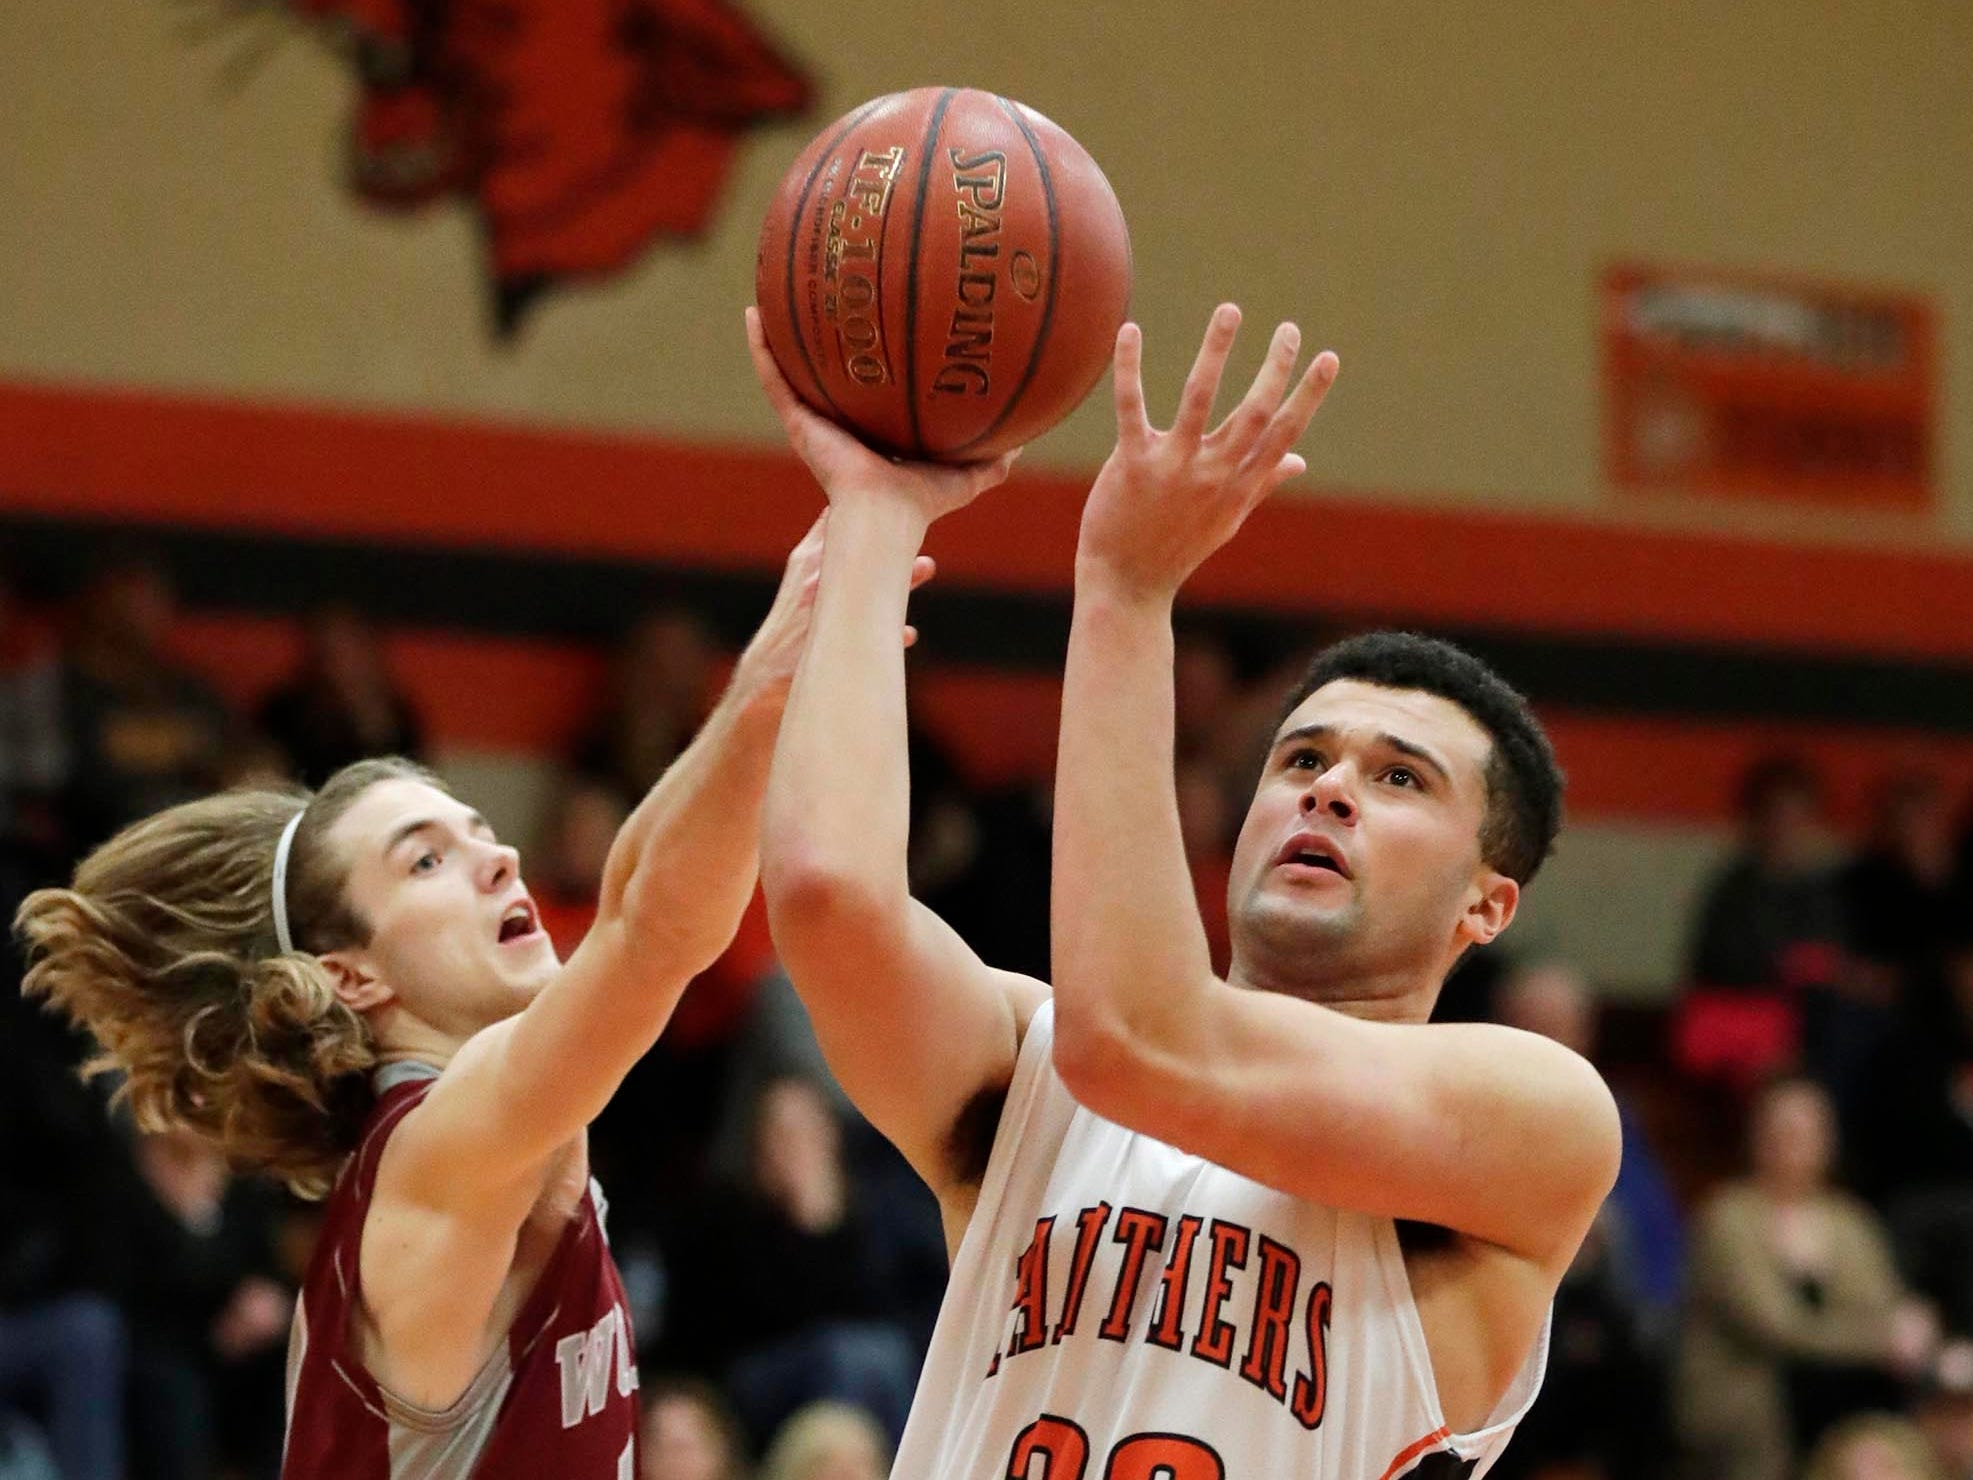 Plymouth's Nick Falls (33) drives to the hoop against Winneconne, Wednesday, February 21, 2019, in Plymouth, Wis.